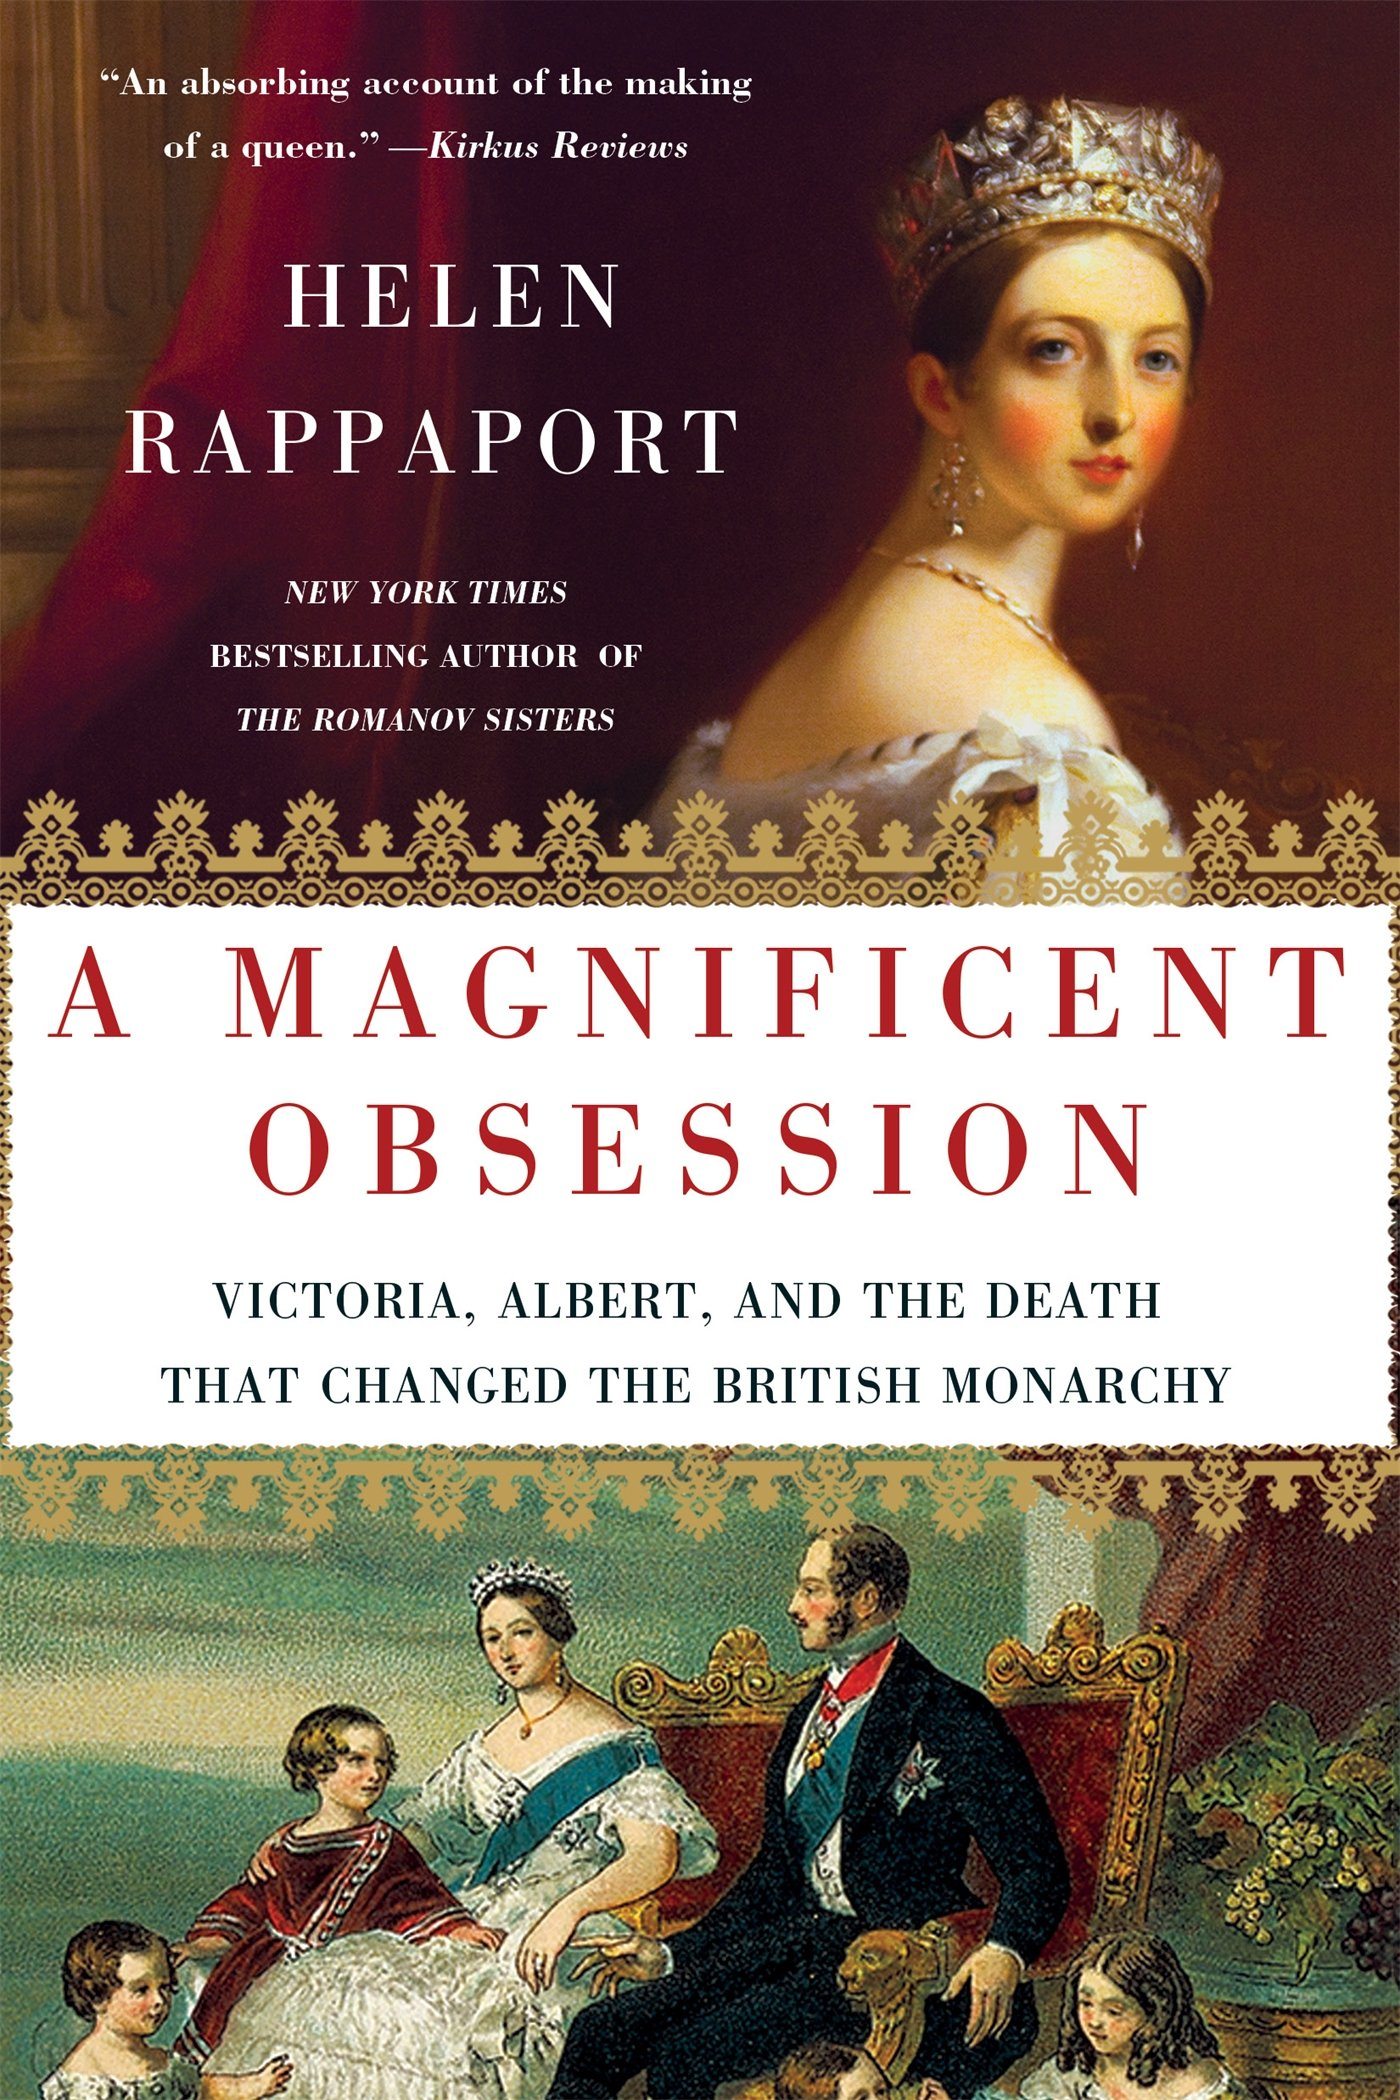 A Magnificent Obsession: Victoria, Albert, and the Death That